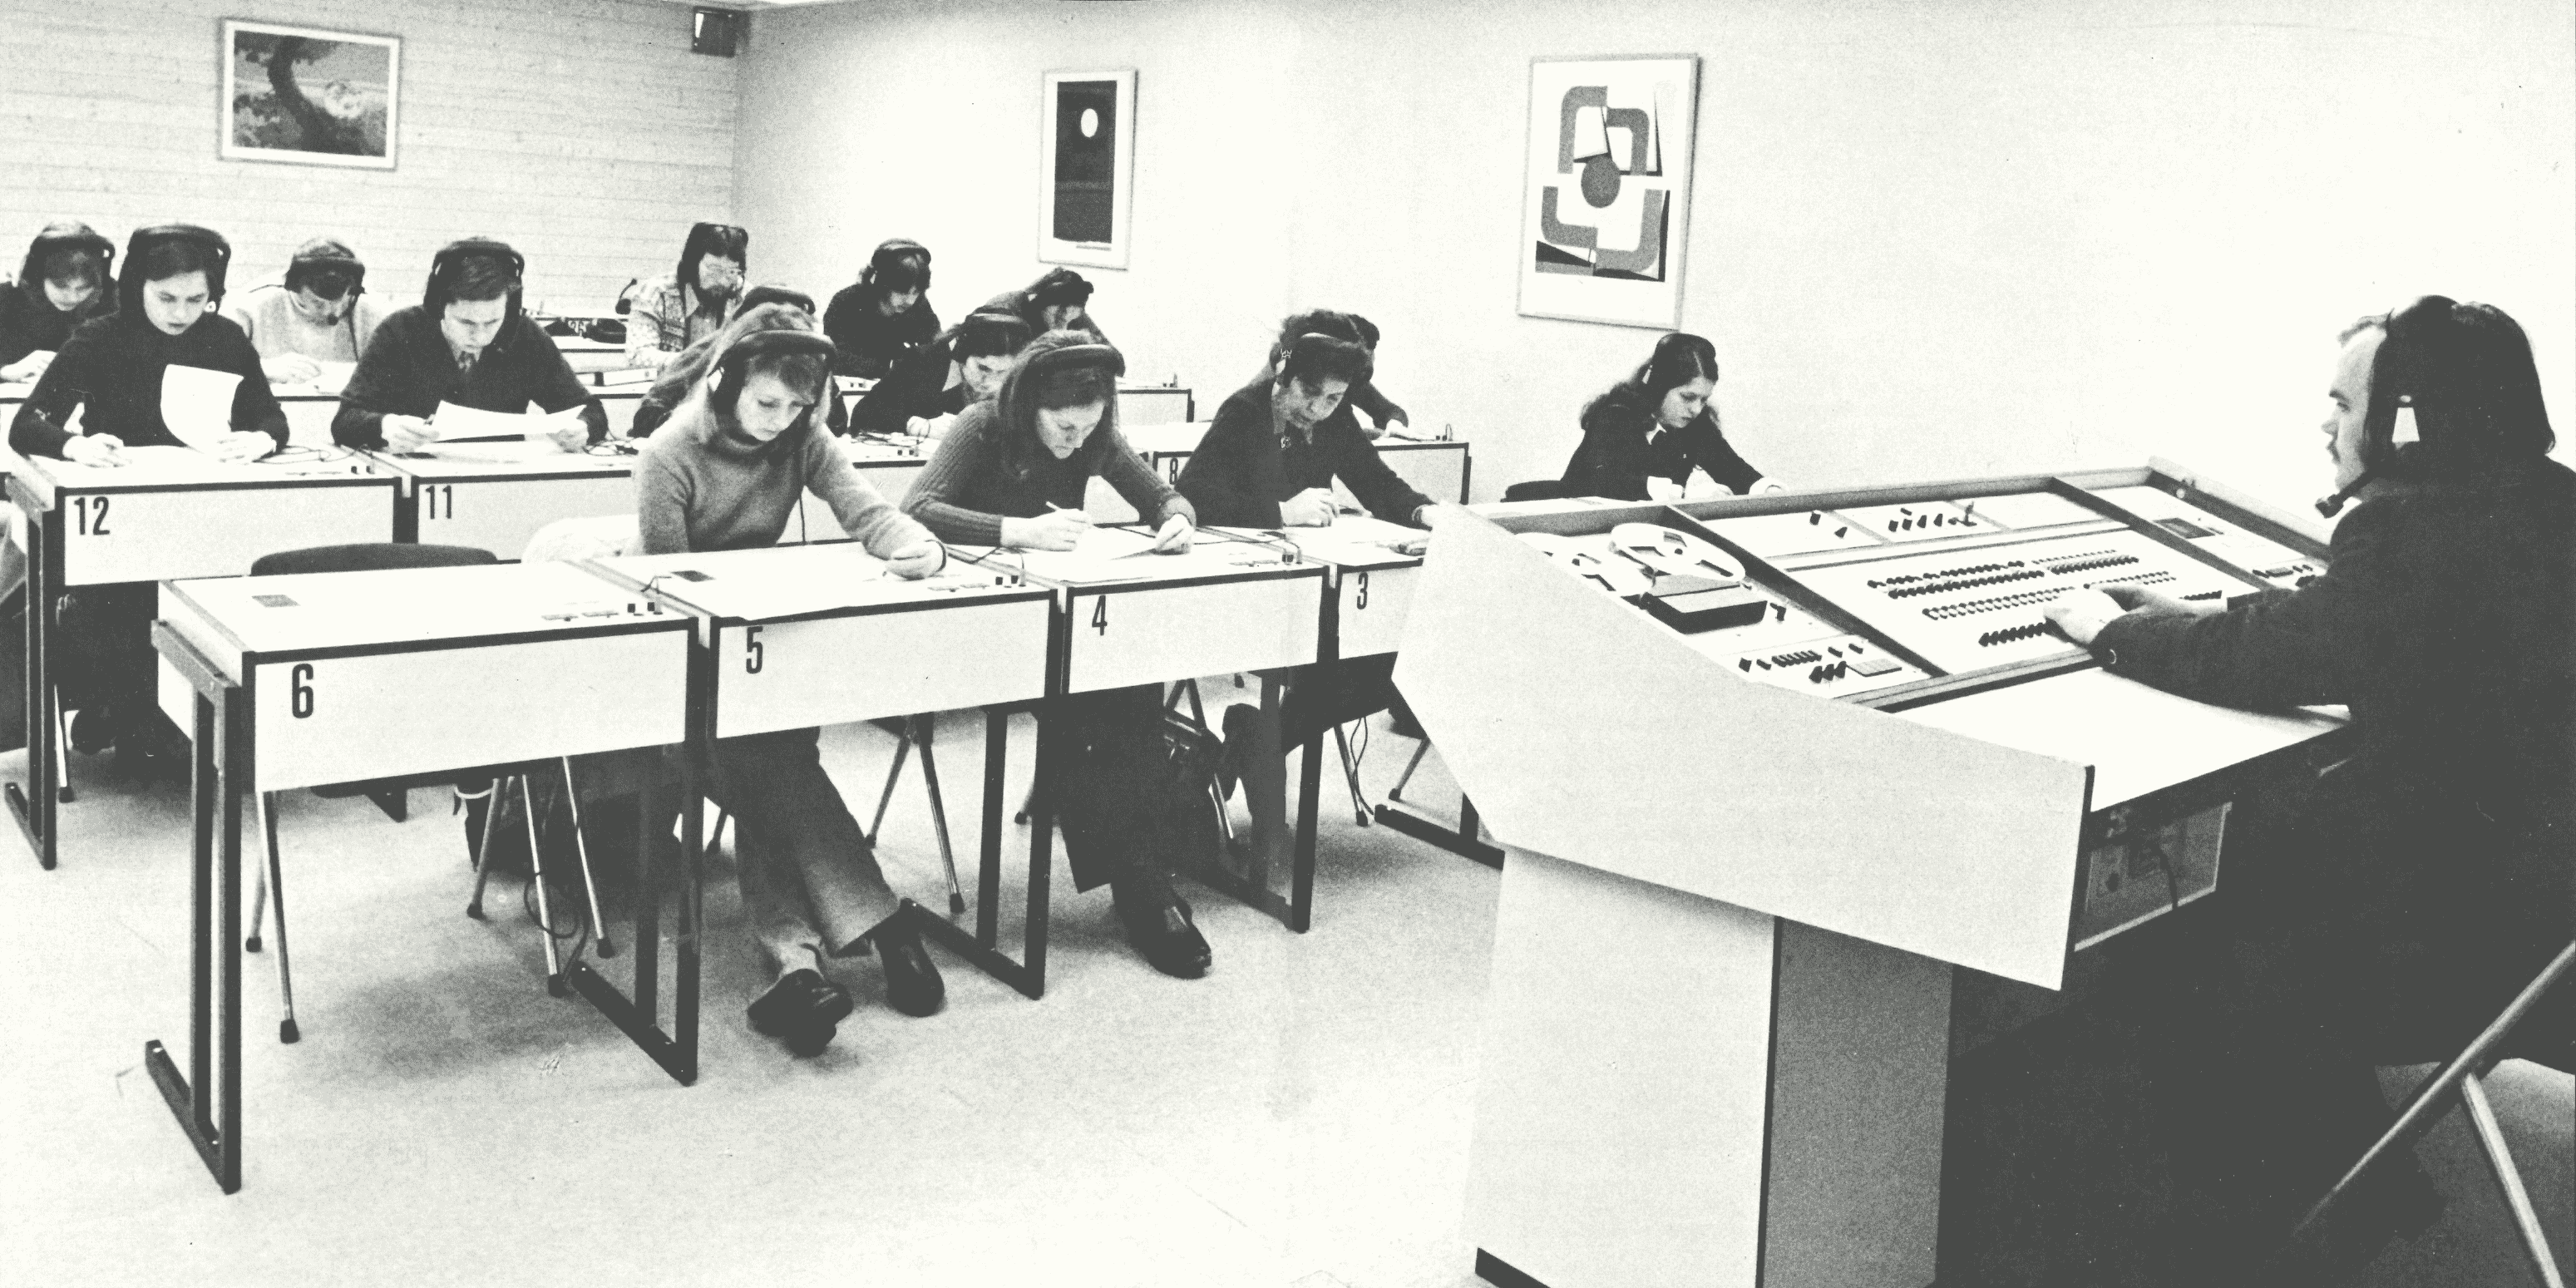 a language lab in the old days